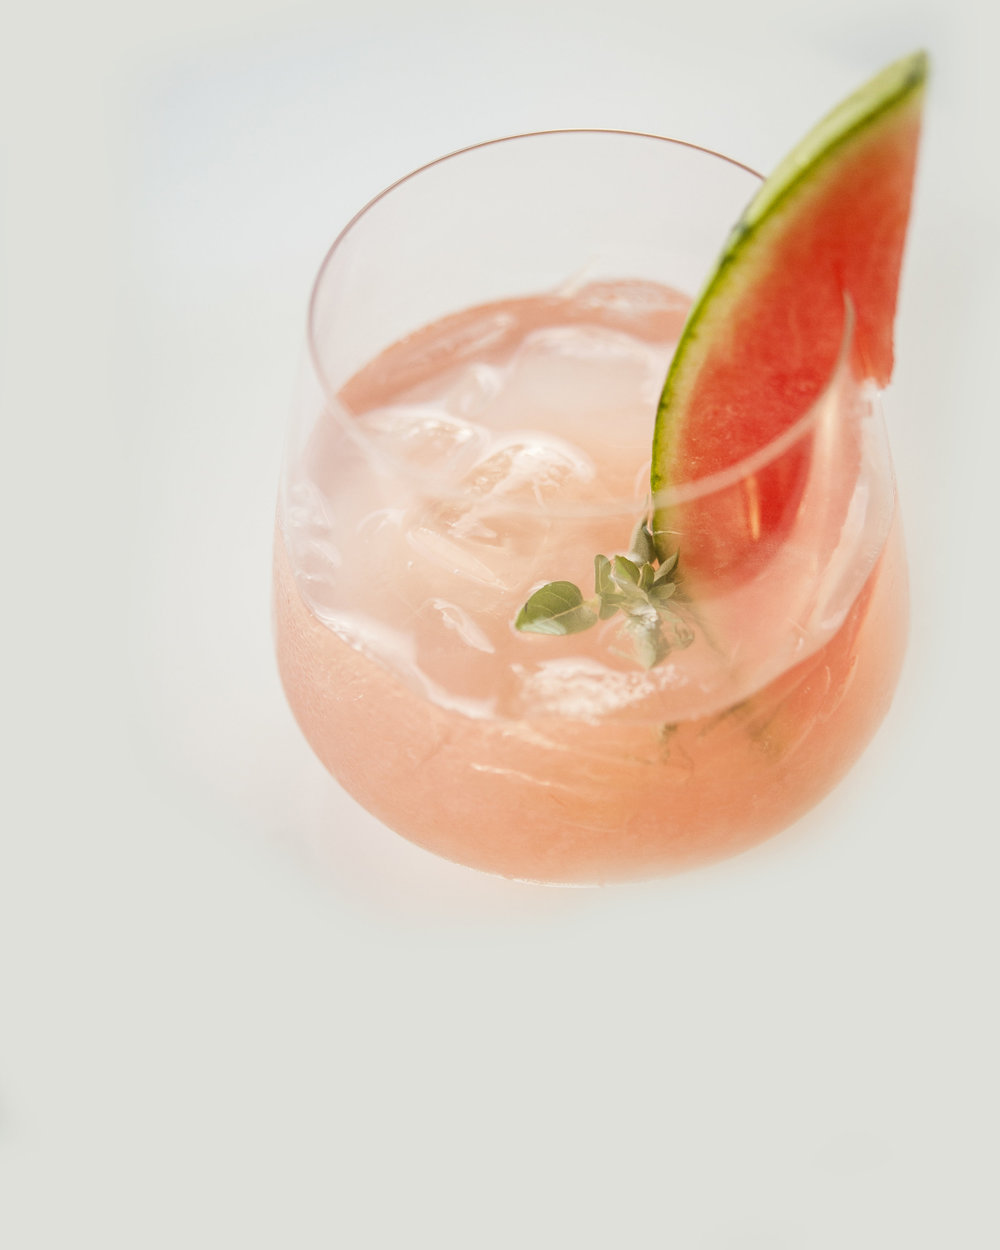 SUMMER SCHOOLED   garden basil, fresh pressed watermelon and lime, simple syrup, white rum